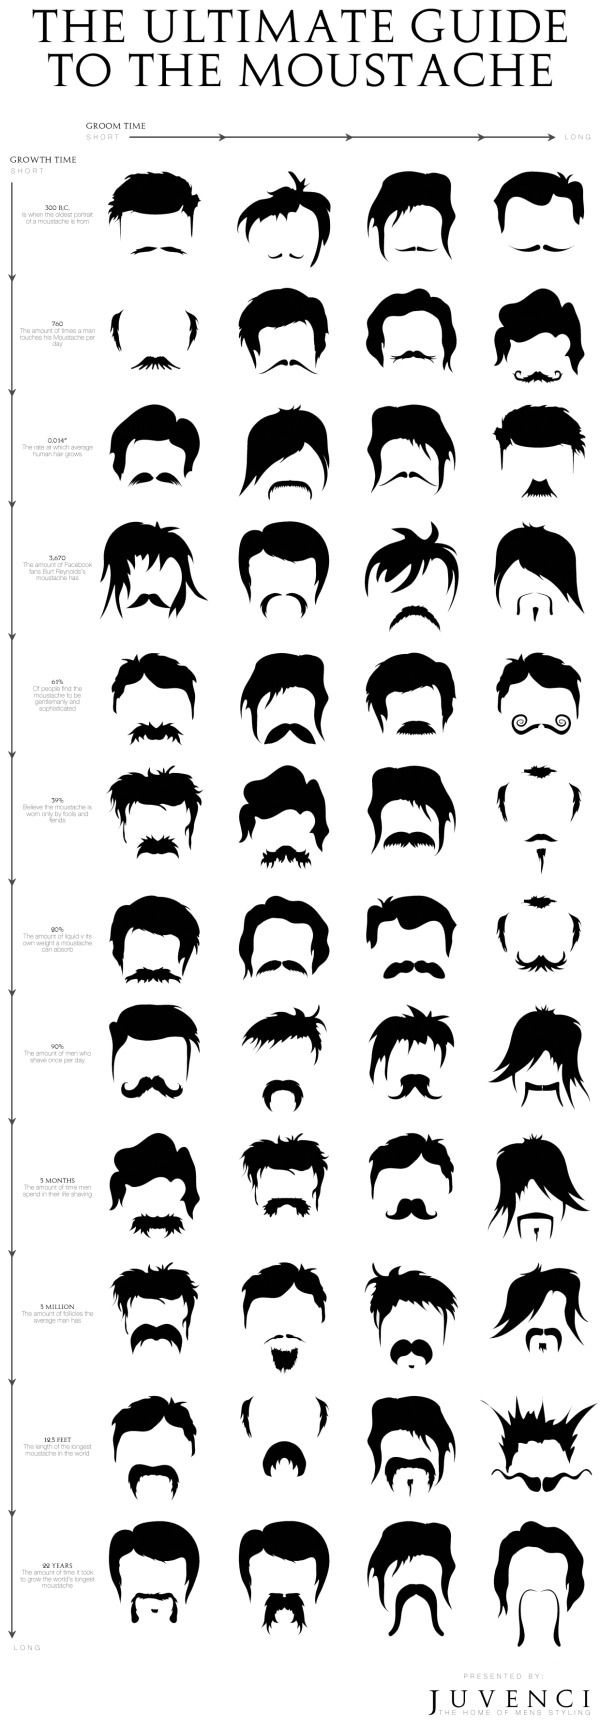 The Ultimate Guide to the Moustache